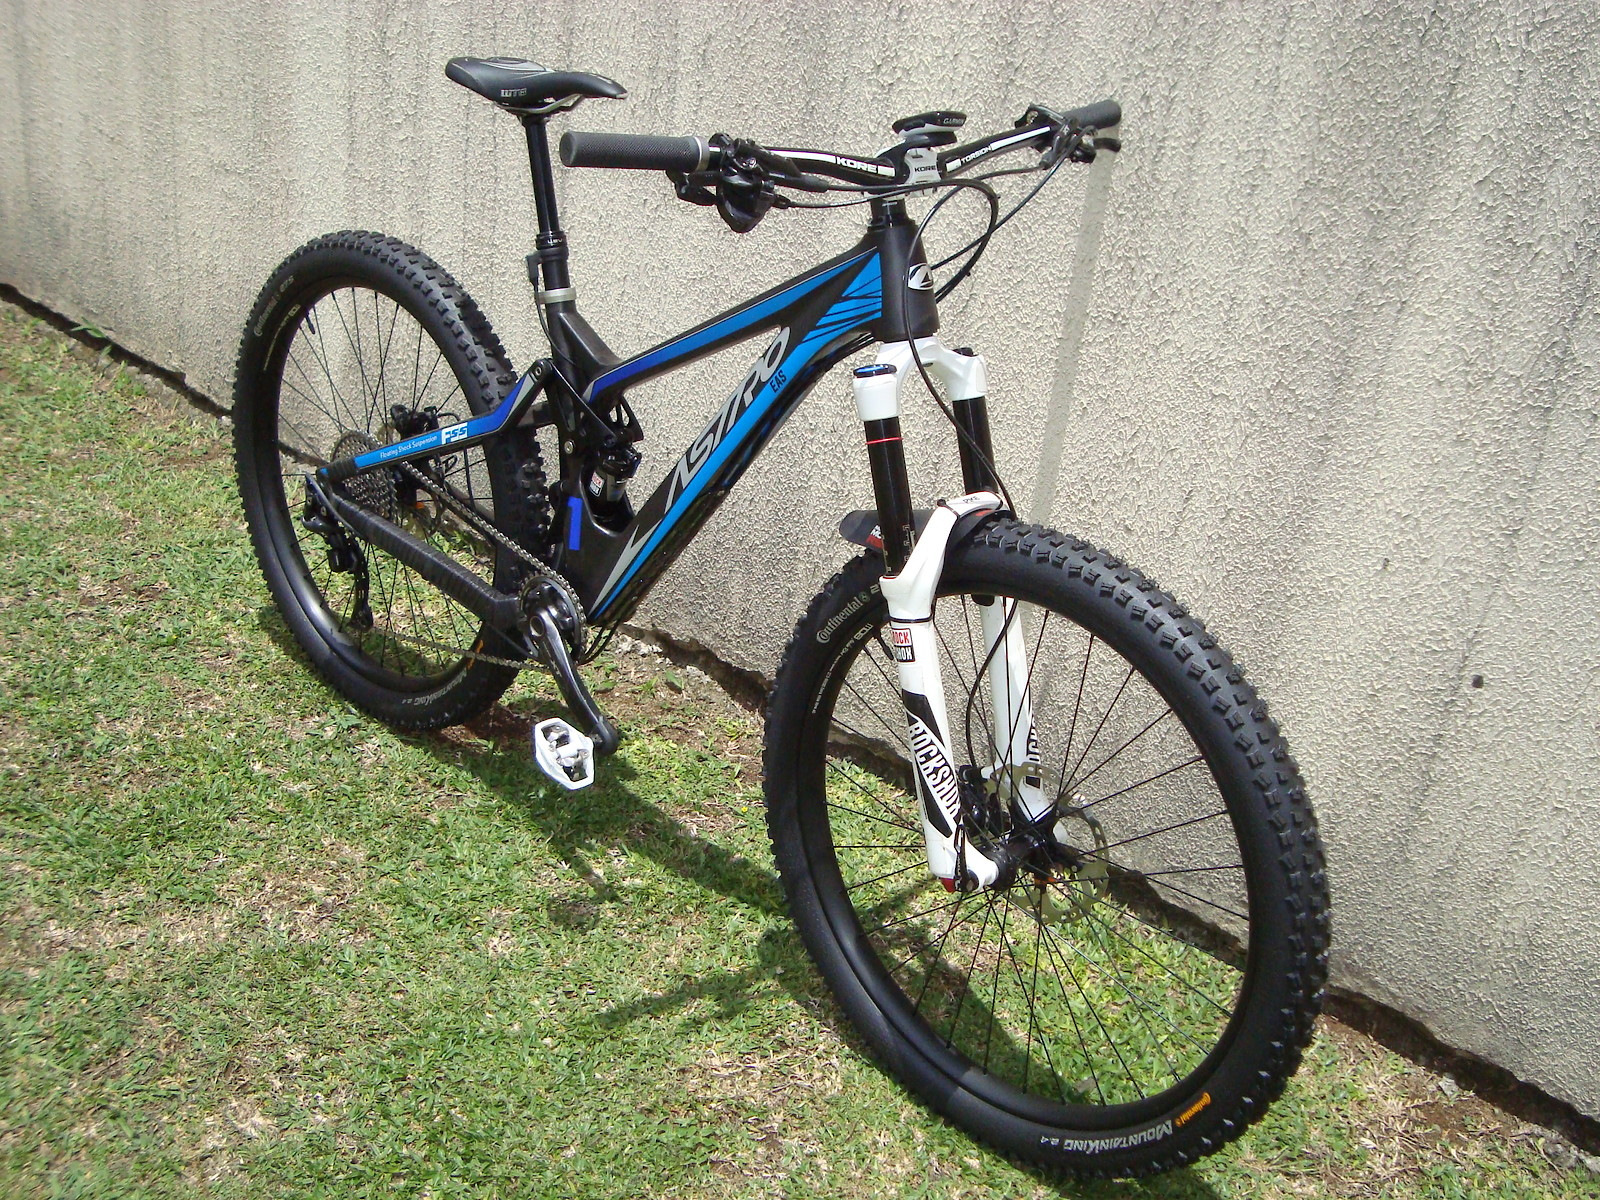 Astro FSS Carbon Enduro - UPDATE - (New Wheels and Tires)